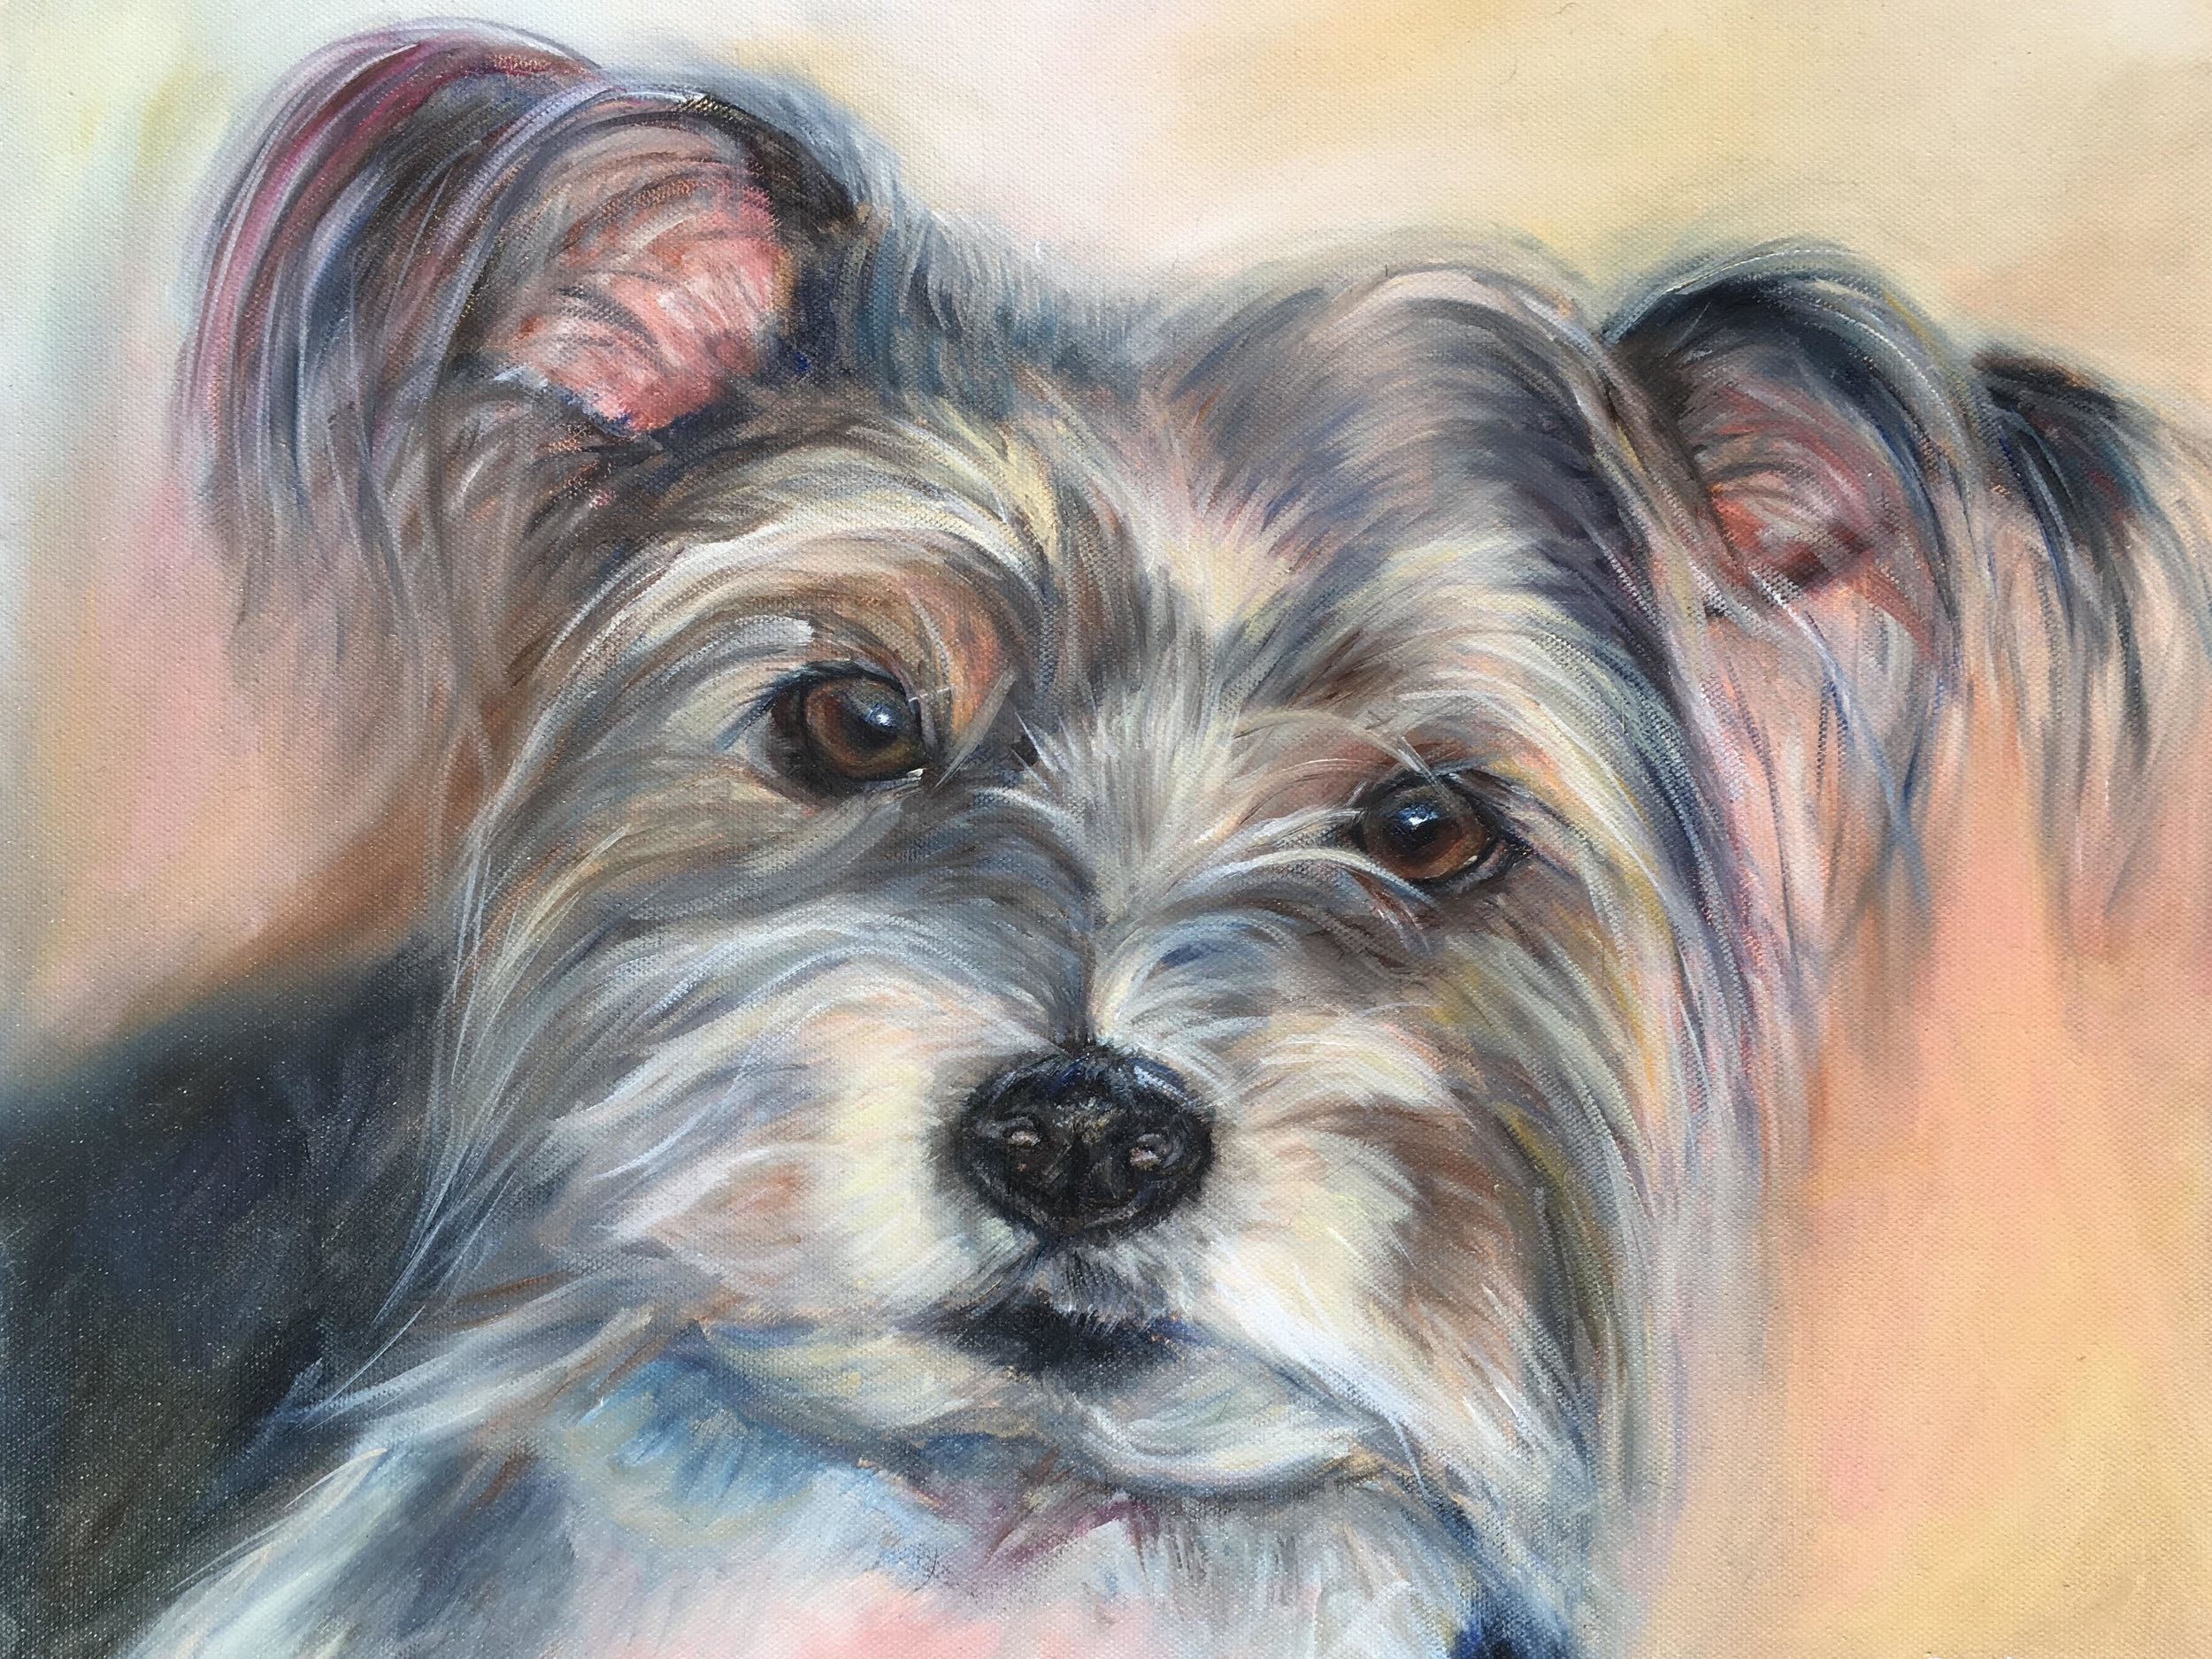 DOG PORTRAIT OF SCRUFFY TERRIER BY OPAL PASTRO ART